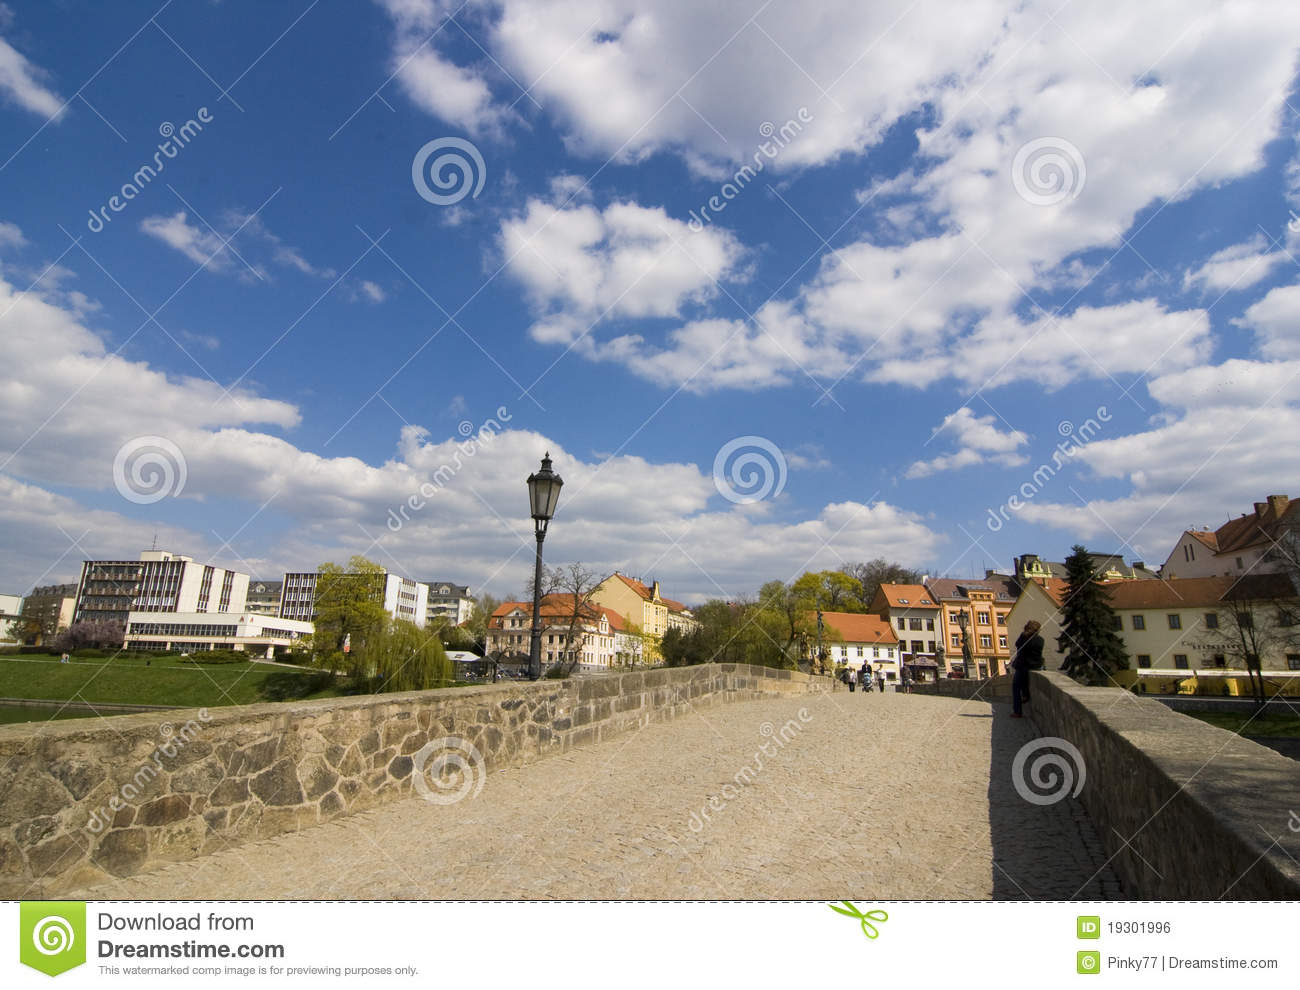 Pisek Czech Republic  city photos gallery : Bridge Of Pisek, Czech Republic Royalty Free Stock Image Image ...